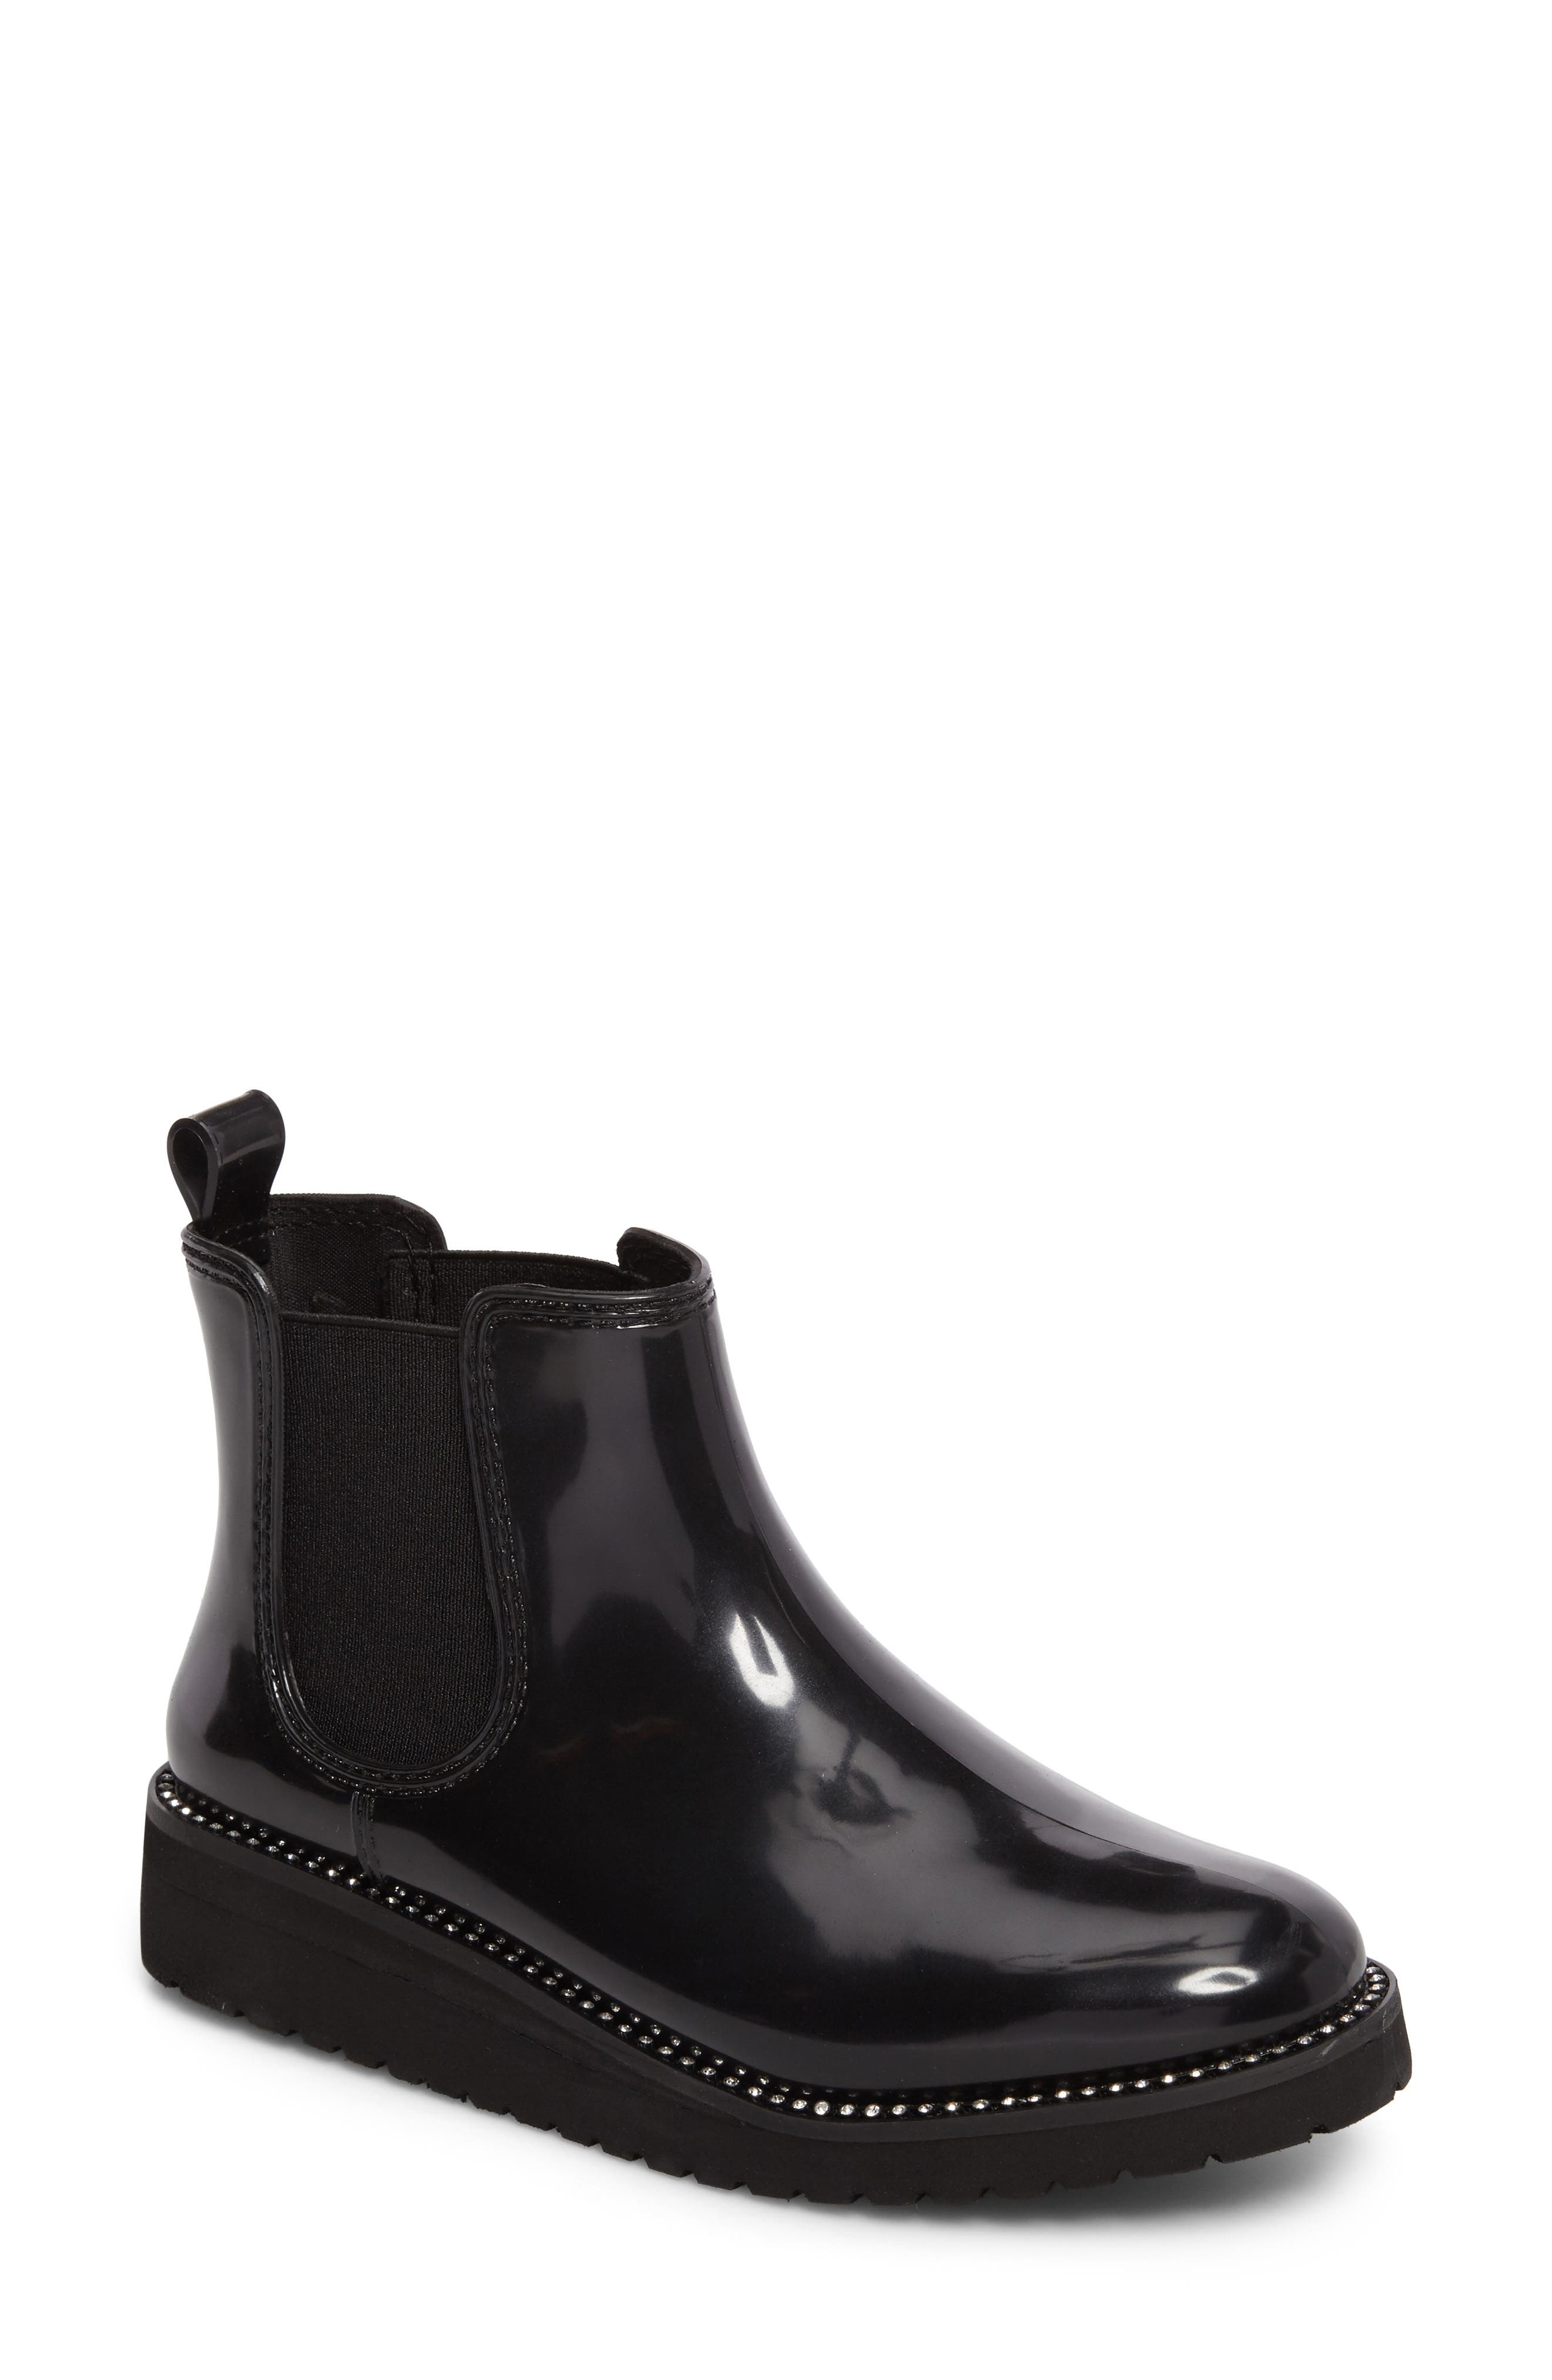 Kerry Waterproof Chelsea Boot,                         Main,                         color, Black Diamond Welt